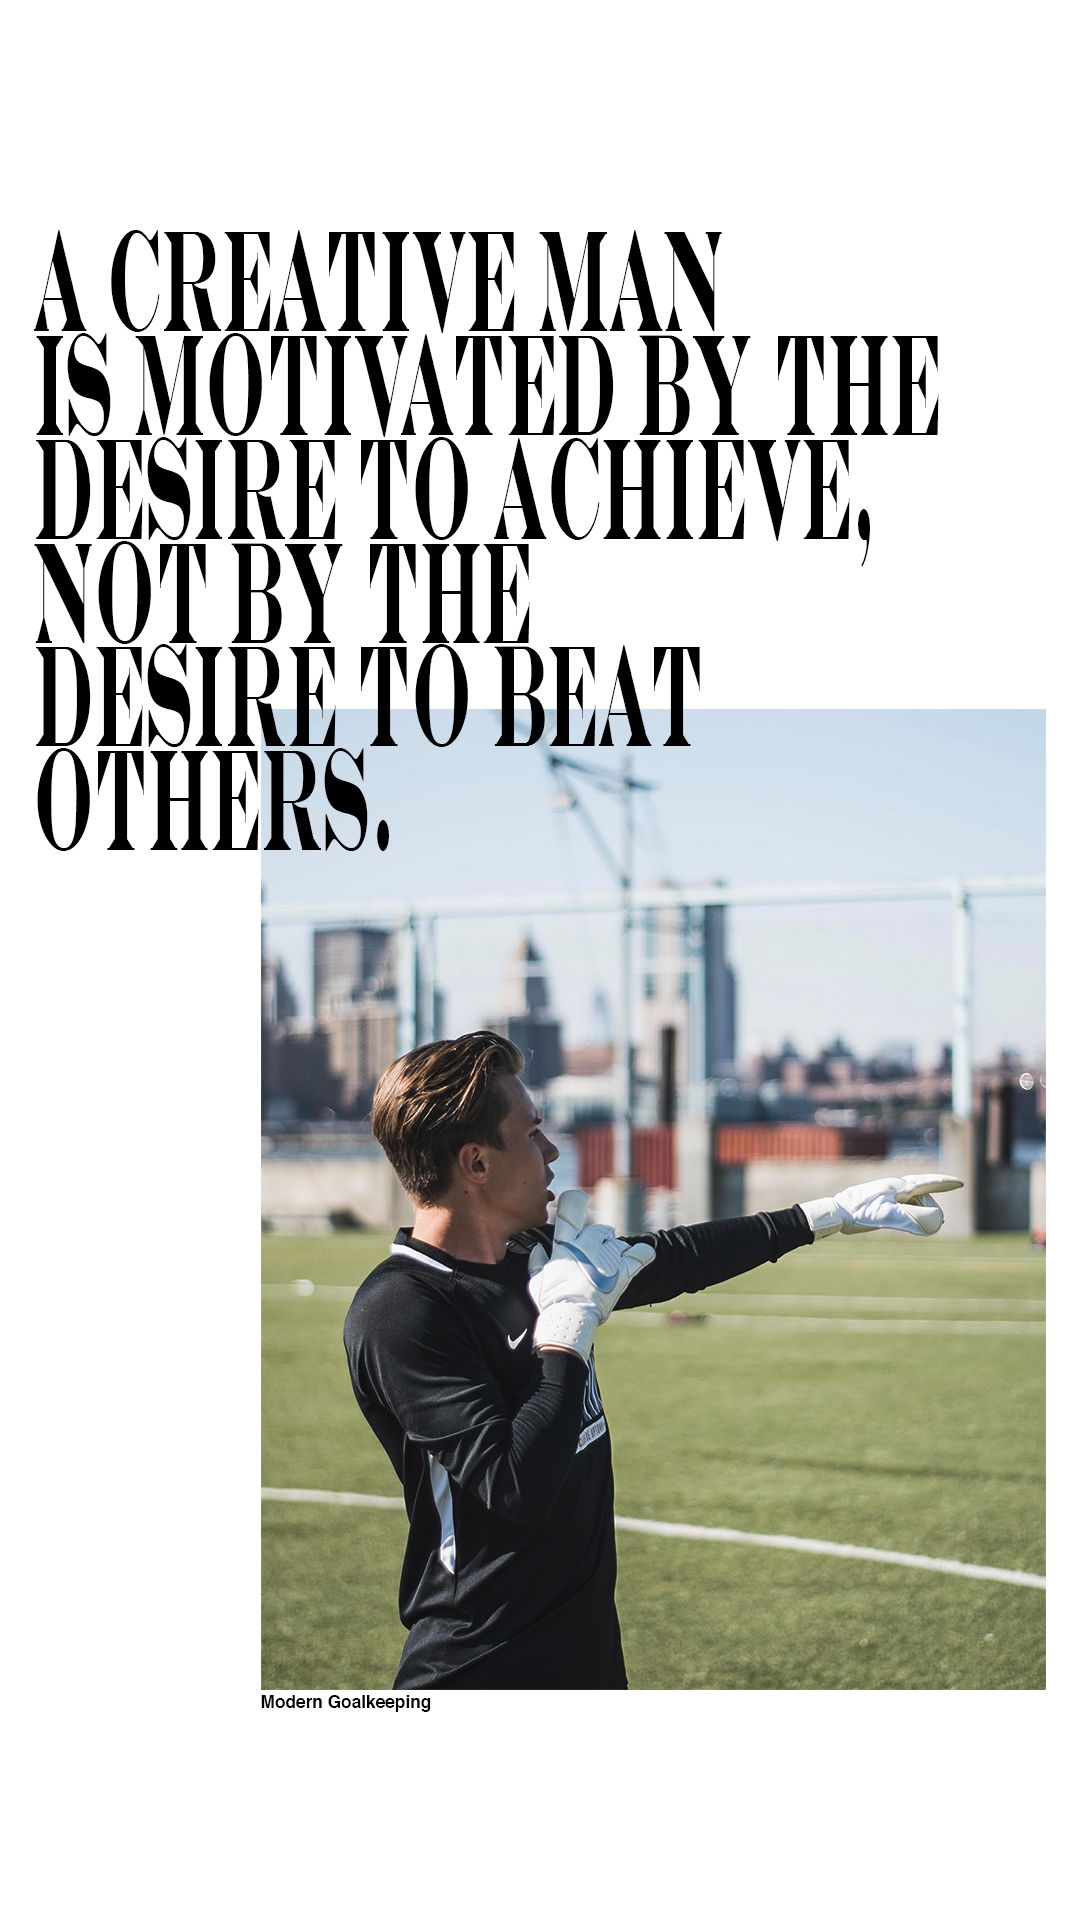 Good Sports Quotes For Instagram